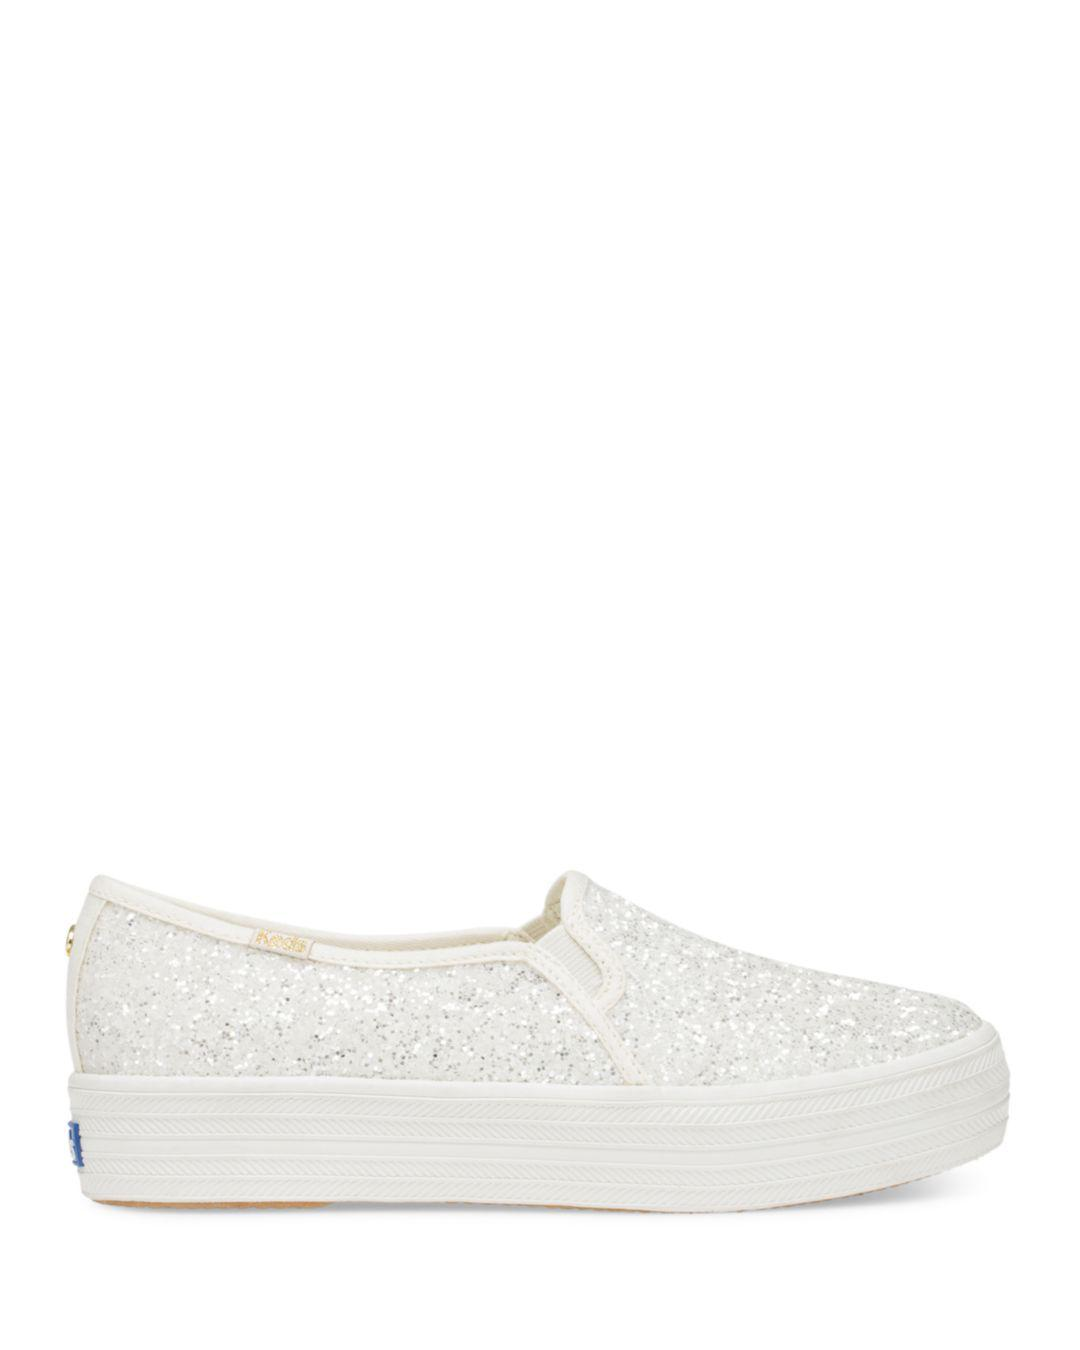 77b4ba53f4fe Lyst - Kate Spade Keds X New York Triple Decker Sneakers in Natural - Save  40%